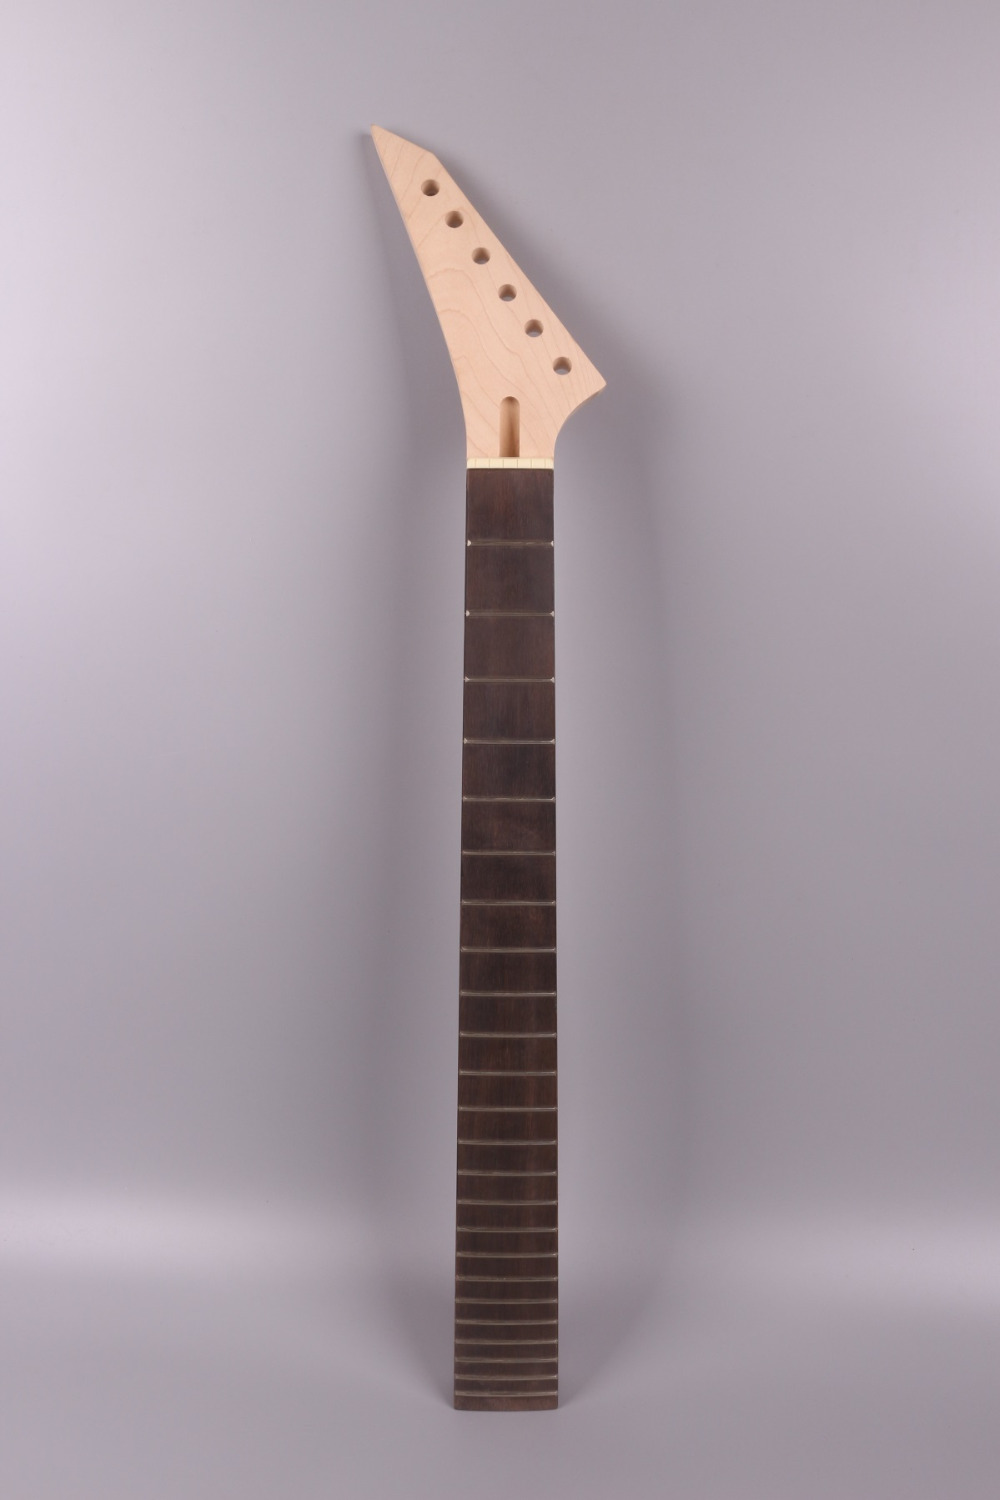 electric guitar neck 22 fret 25.5 maple Locking nut  JKX style yinfente 010#  Locking nut left hand <br>